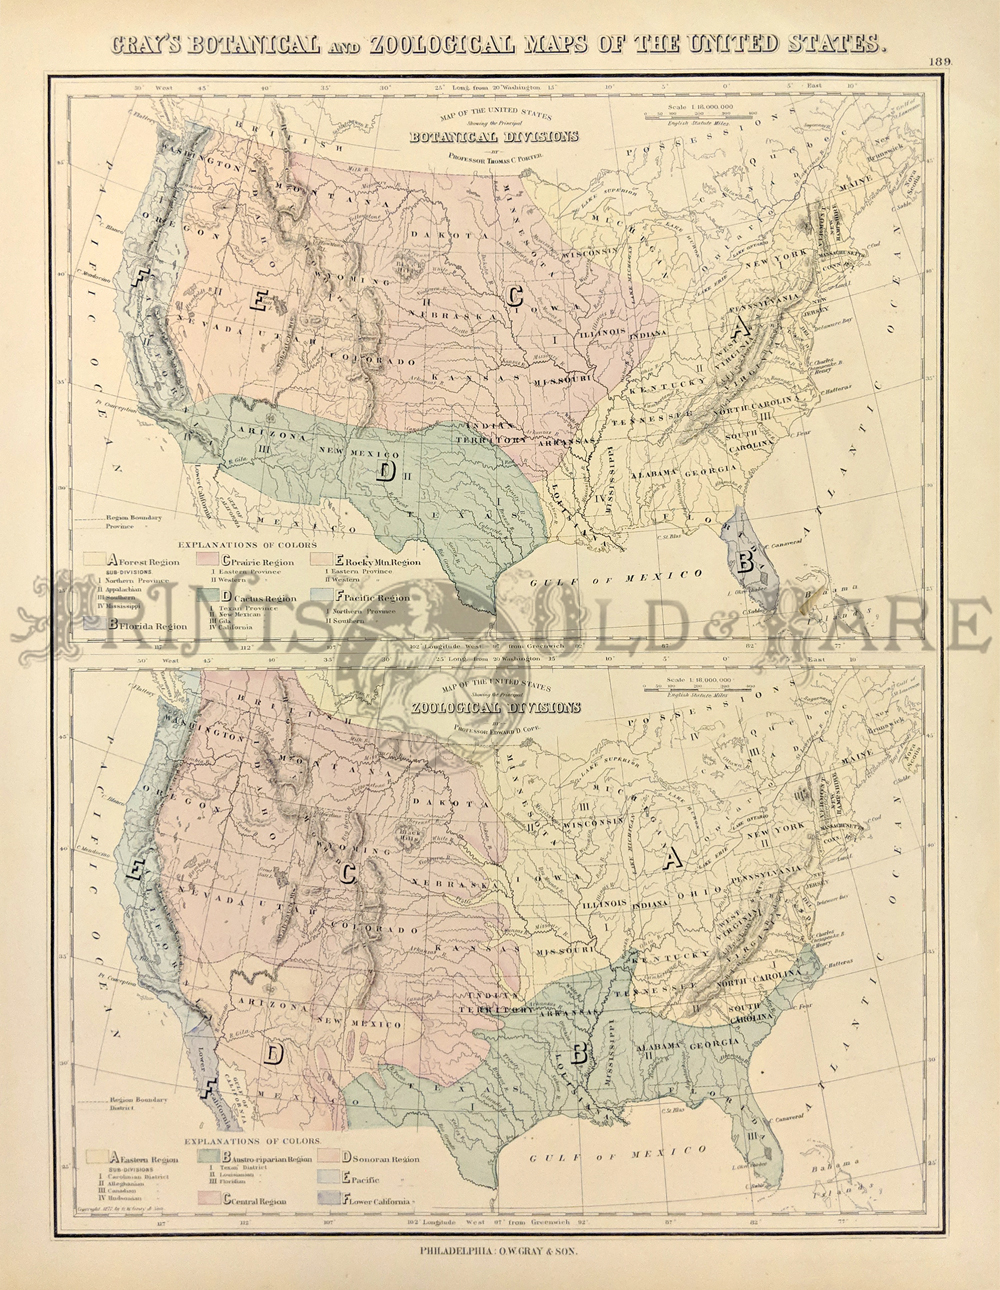 Prints Old & Rare - United States of America - Antique Maps ... on map of england and united states, mid south united states, map of union confederate border states, map of west of united states, view map of united states, map of east coast united states, map of alabama, map of new york united states, map of airports in united states, interstate map of united states, south central united states, map of united states to australia, outline map of united states, bing maps of the united states, map of united states of america, map of mid united states, map of eastern states of united states, map of midsouth united states, north east south west united states, map of western united states,